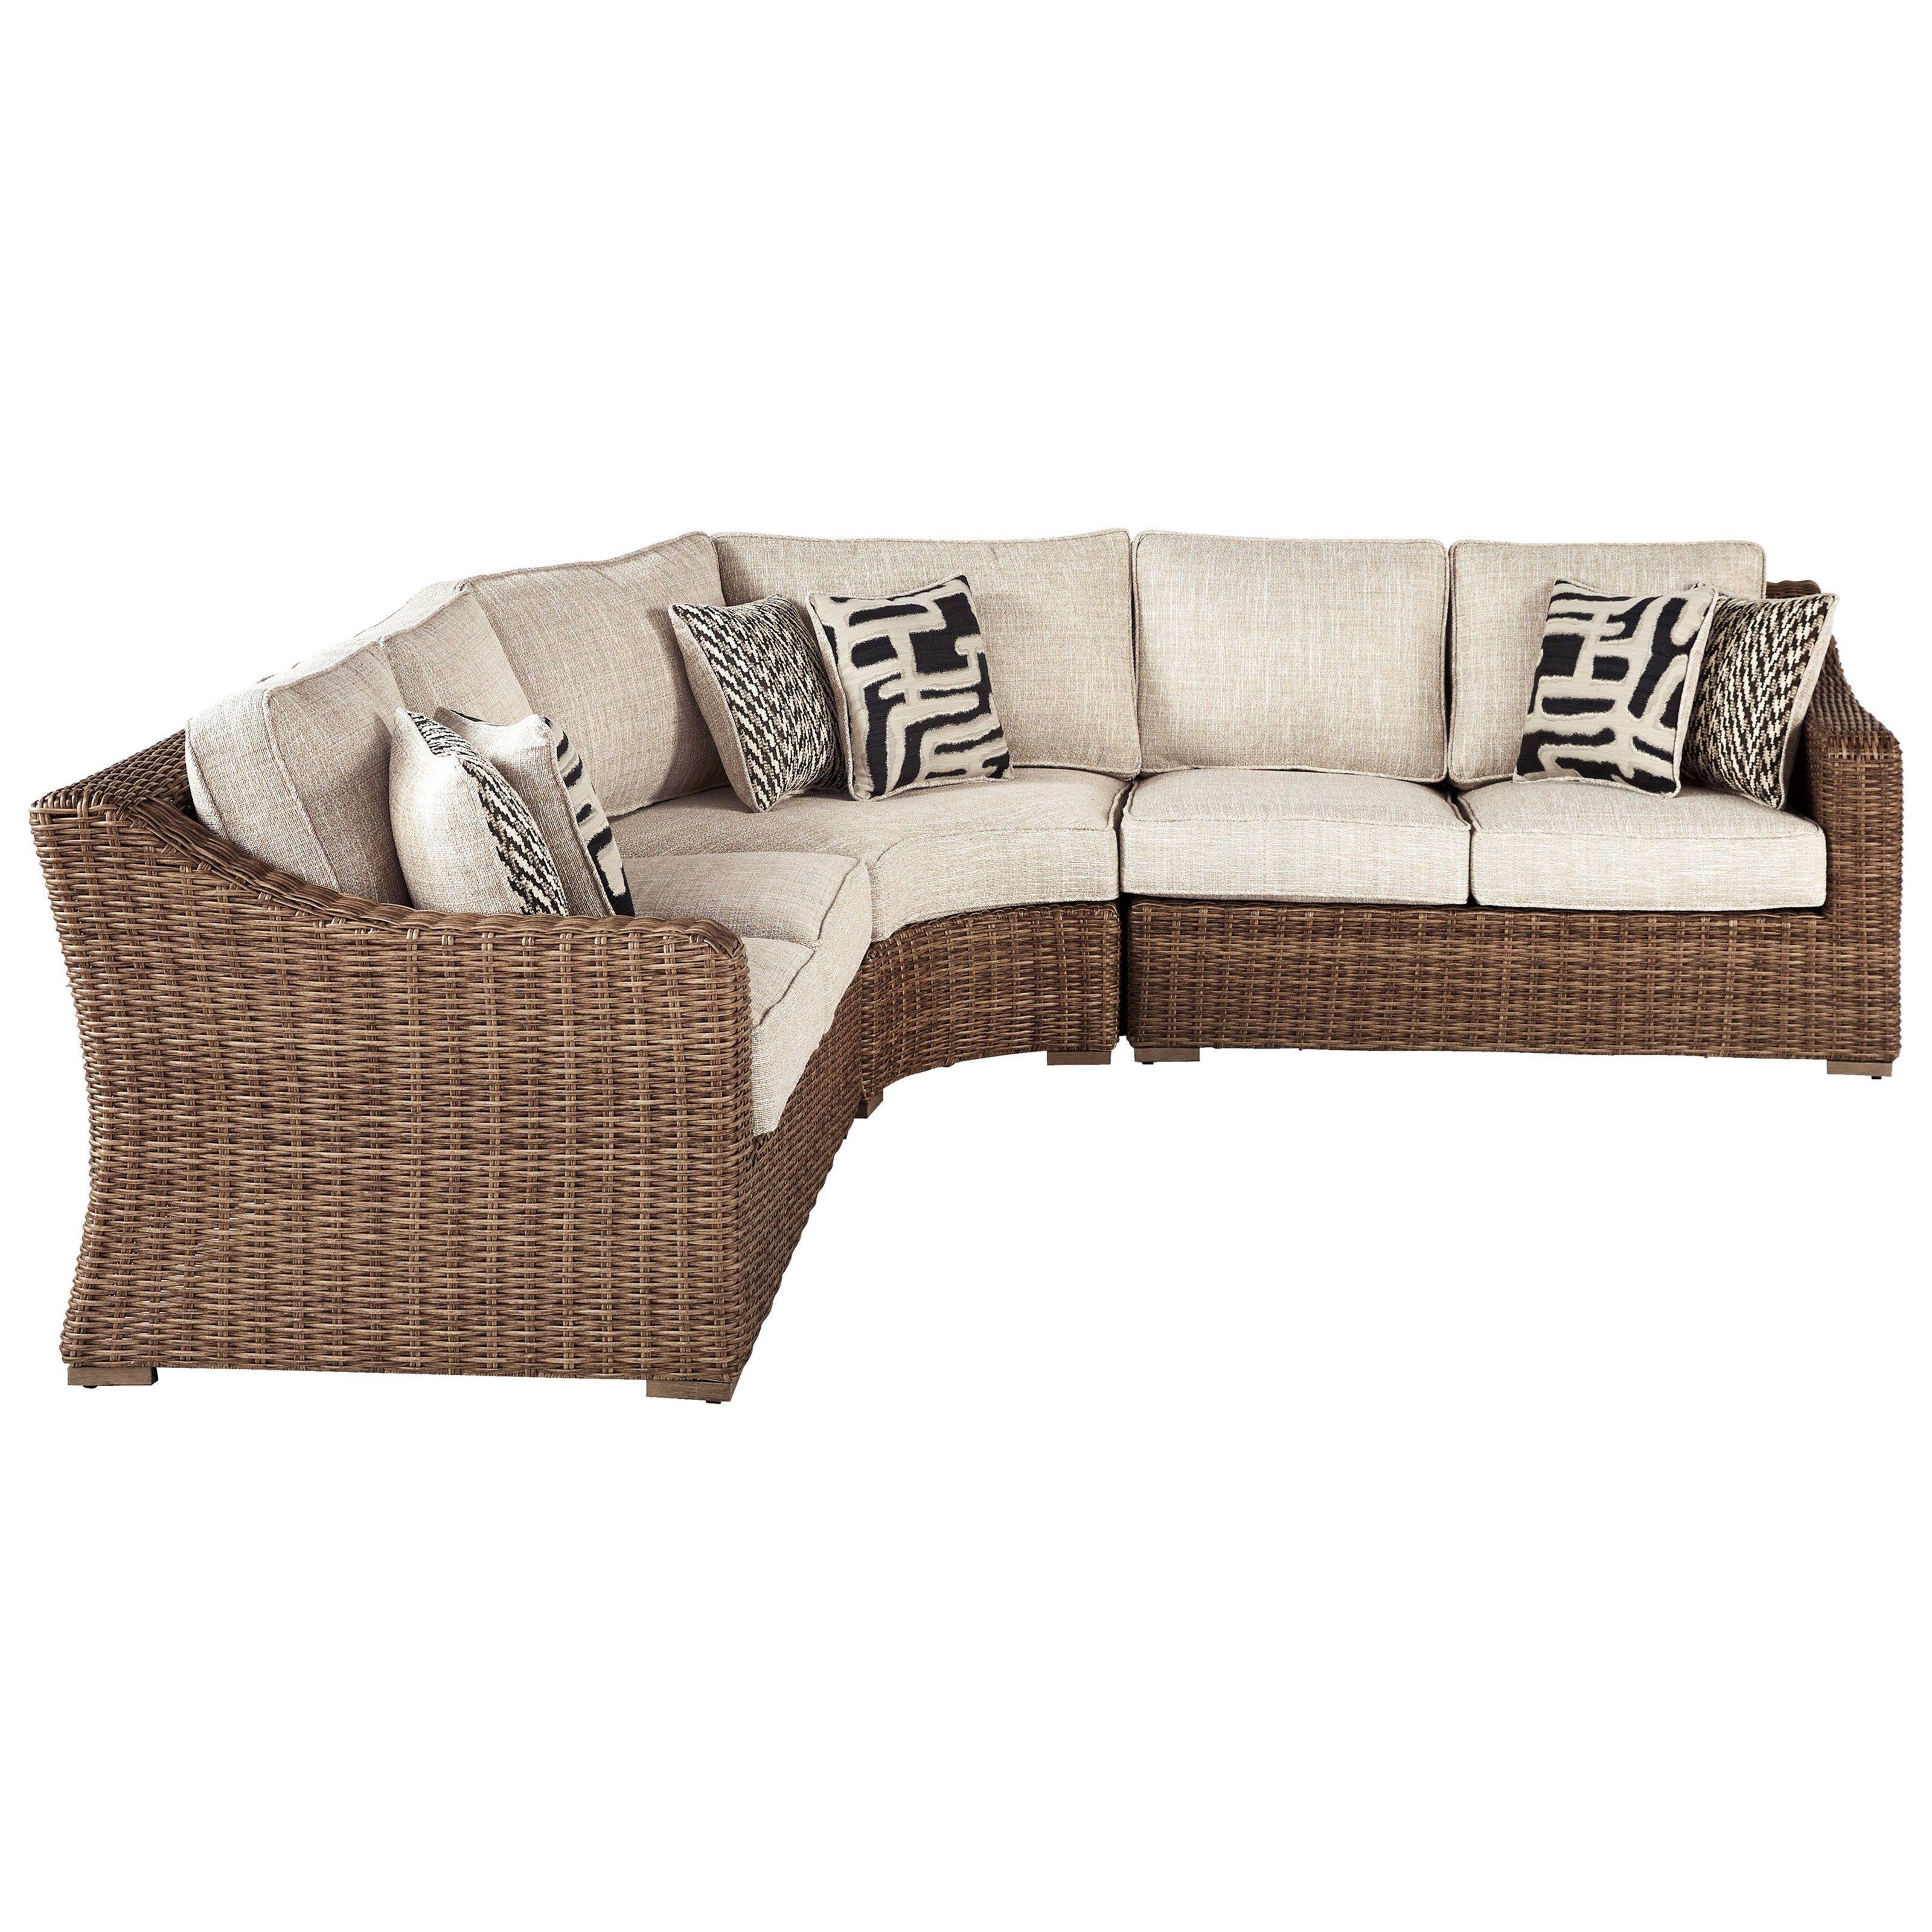 Signature Design by Ashley Beachcroft 4 Piece Sectional - Item Number: P791-854+846+851